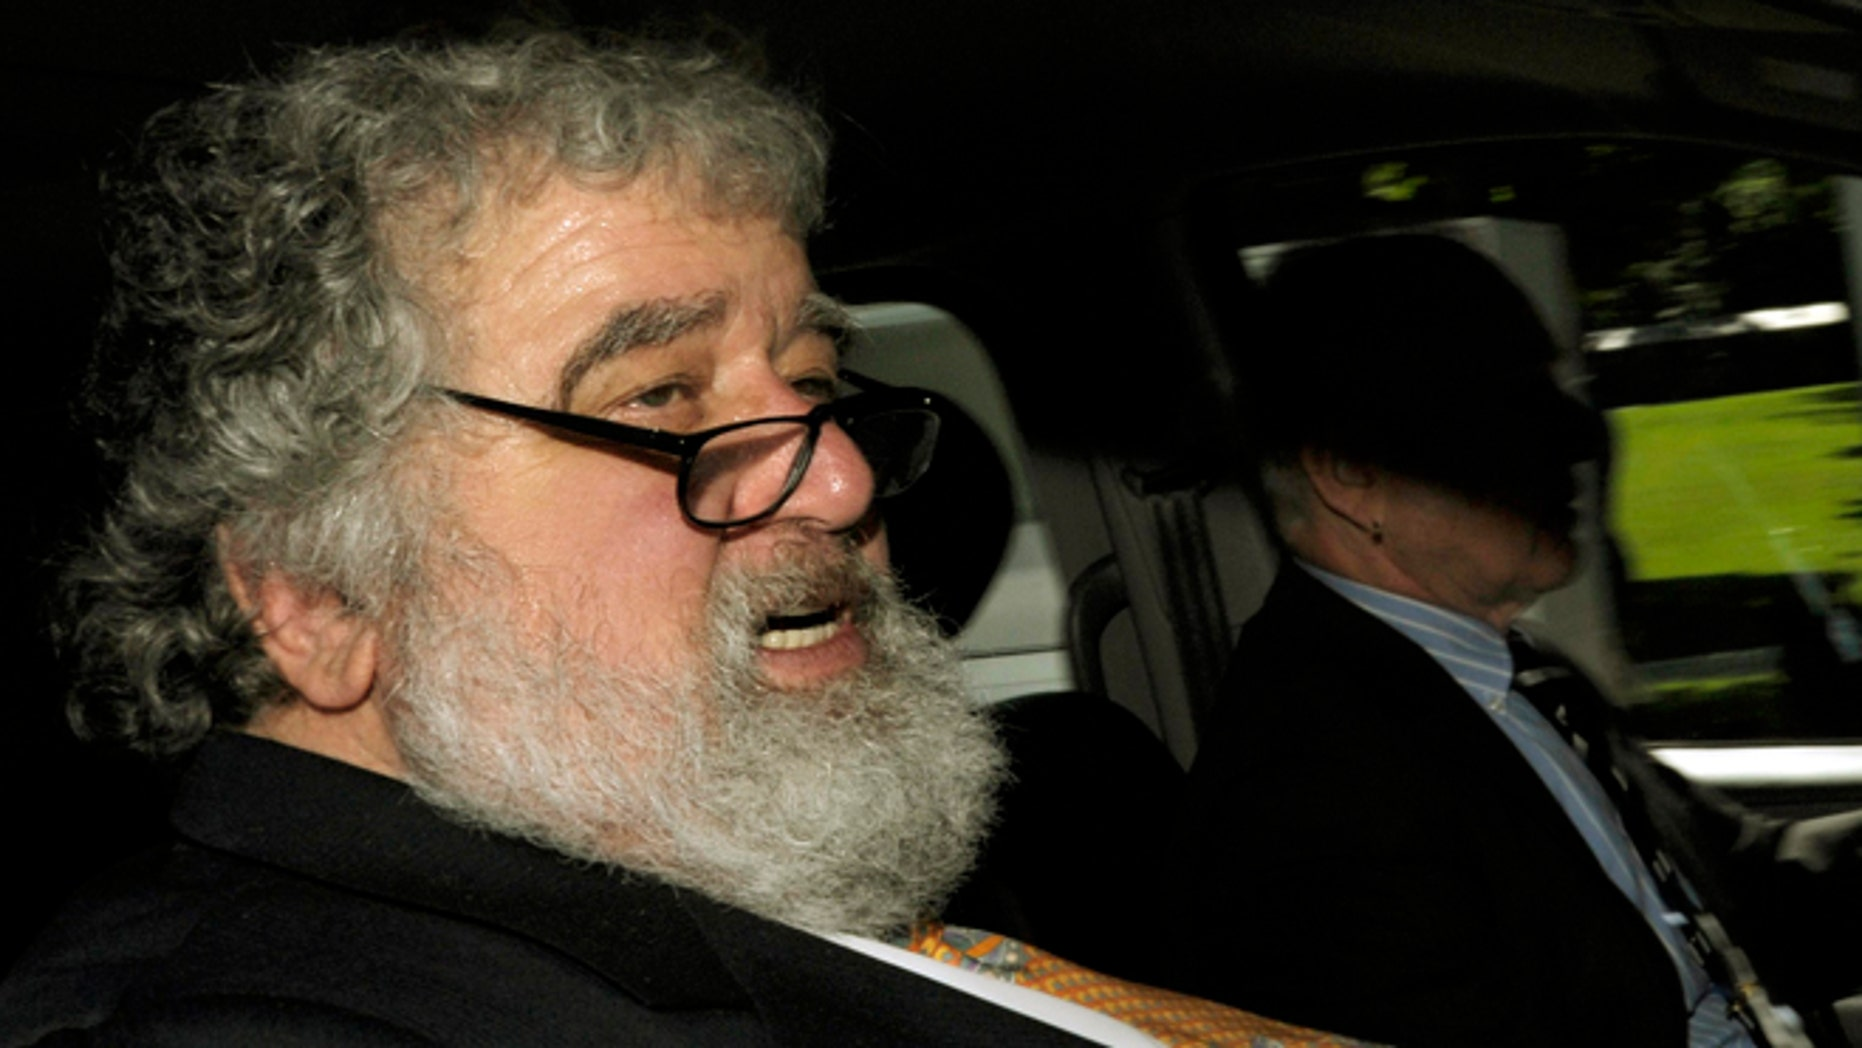 FILE - In this May 29, 2011 file photo FIFA official Chuck Blazer leaves the FIFA headquarters in Zurich, Switzerland. As it was announced Thursday, July 9, 2015 FIFA's ethics committee has expelled former executive committee member Blazer from football for bribery and other corruption. (Steffen Schmidt/Keystone via AP, File)